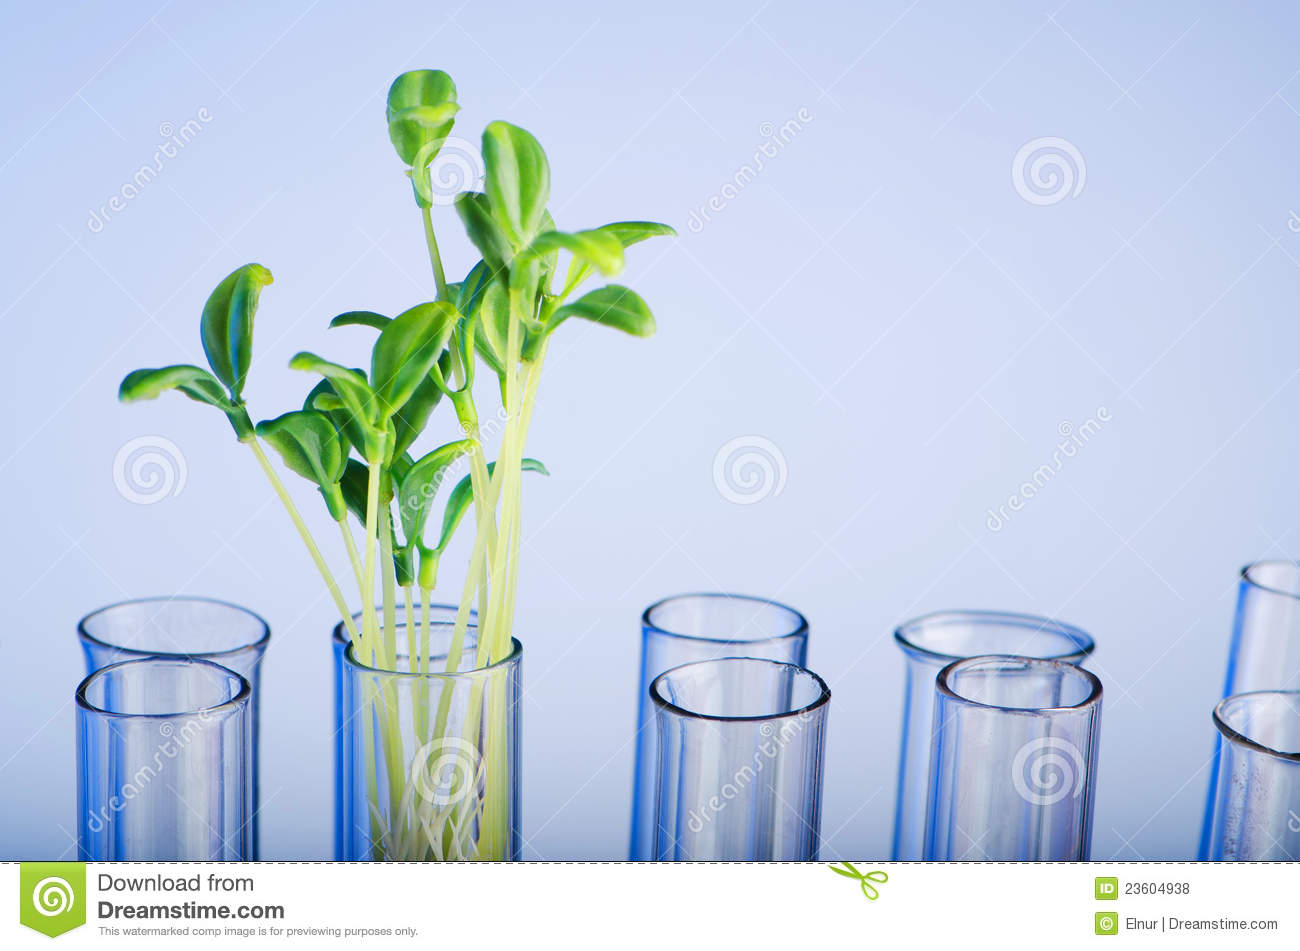 Experiment with green seedling